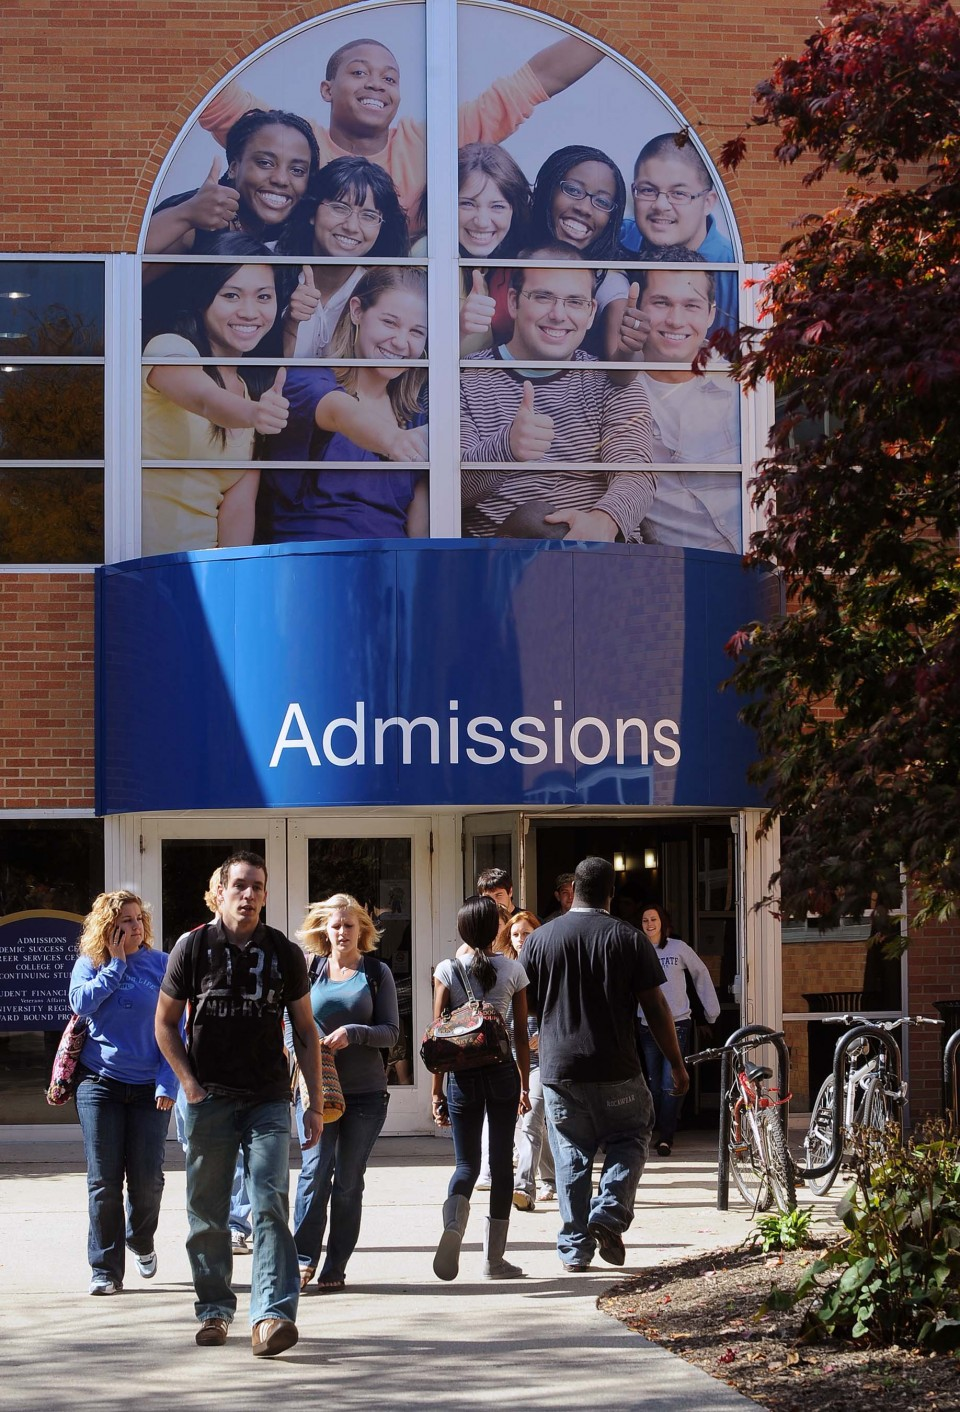 Students pass through the entrance of the Schwartz Center